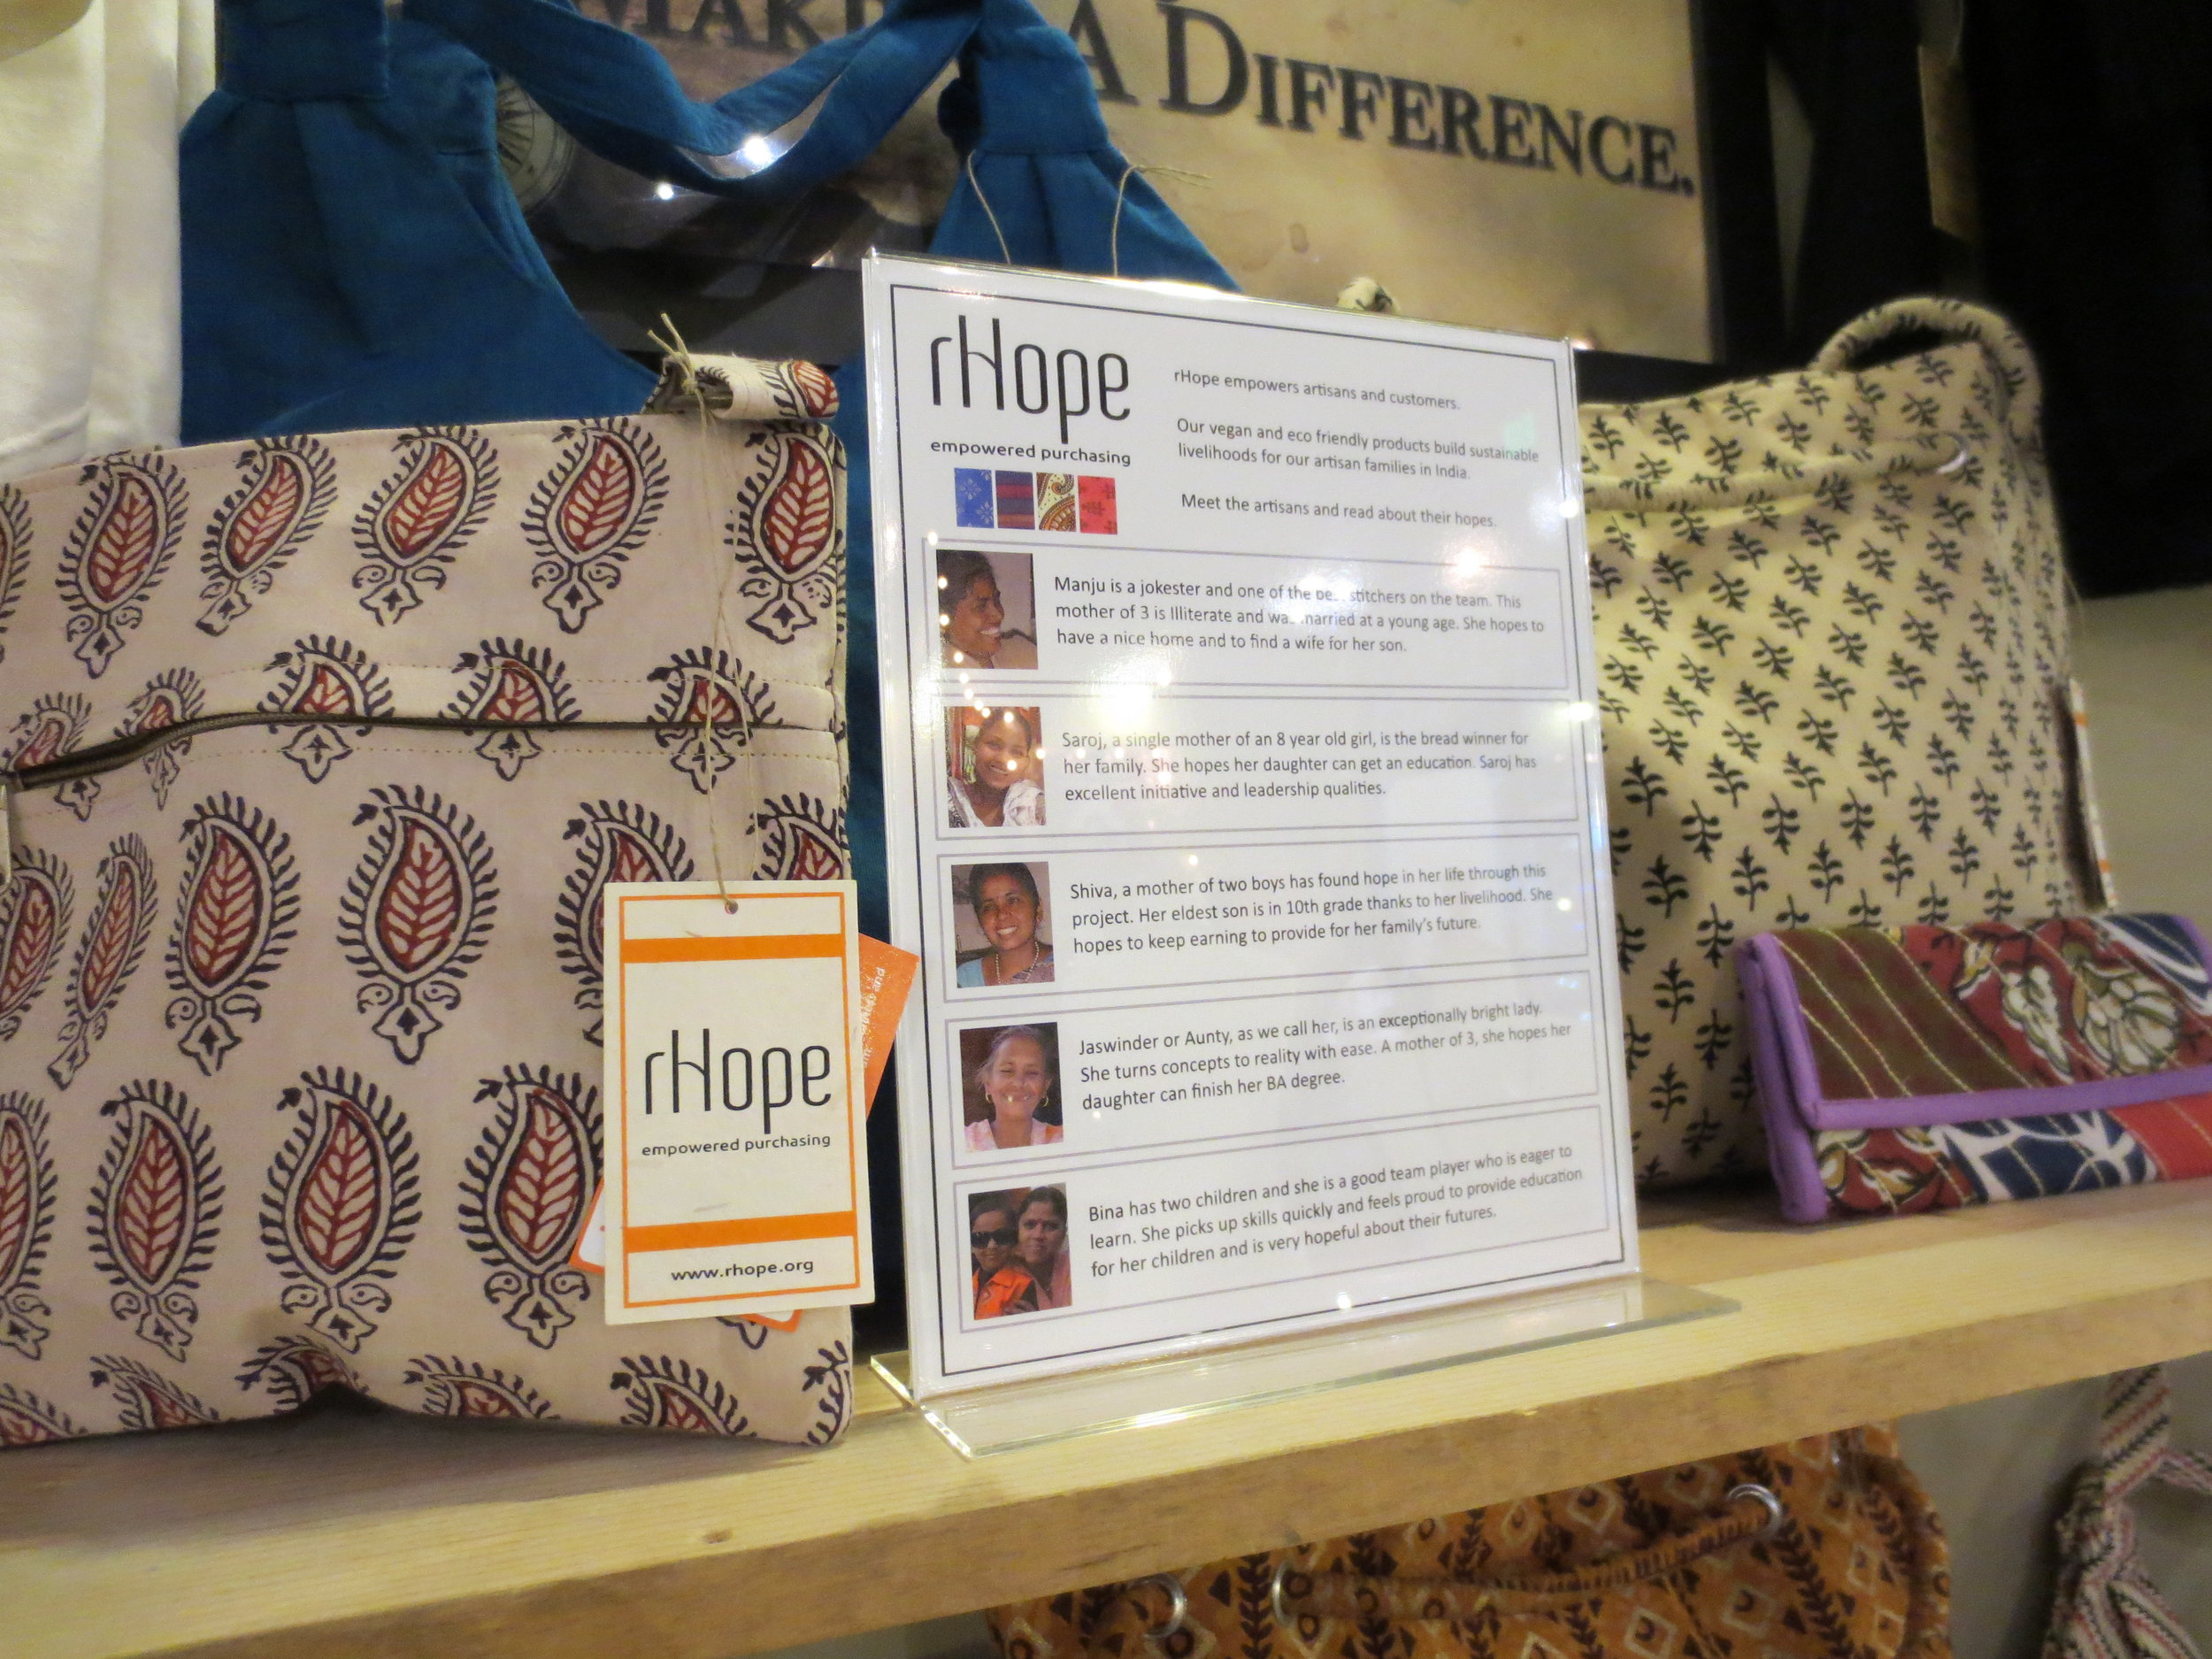 rHope display at Convergence